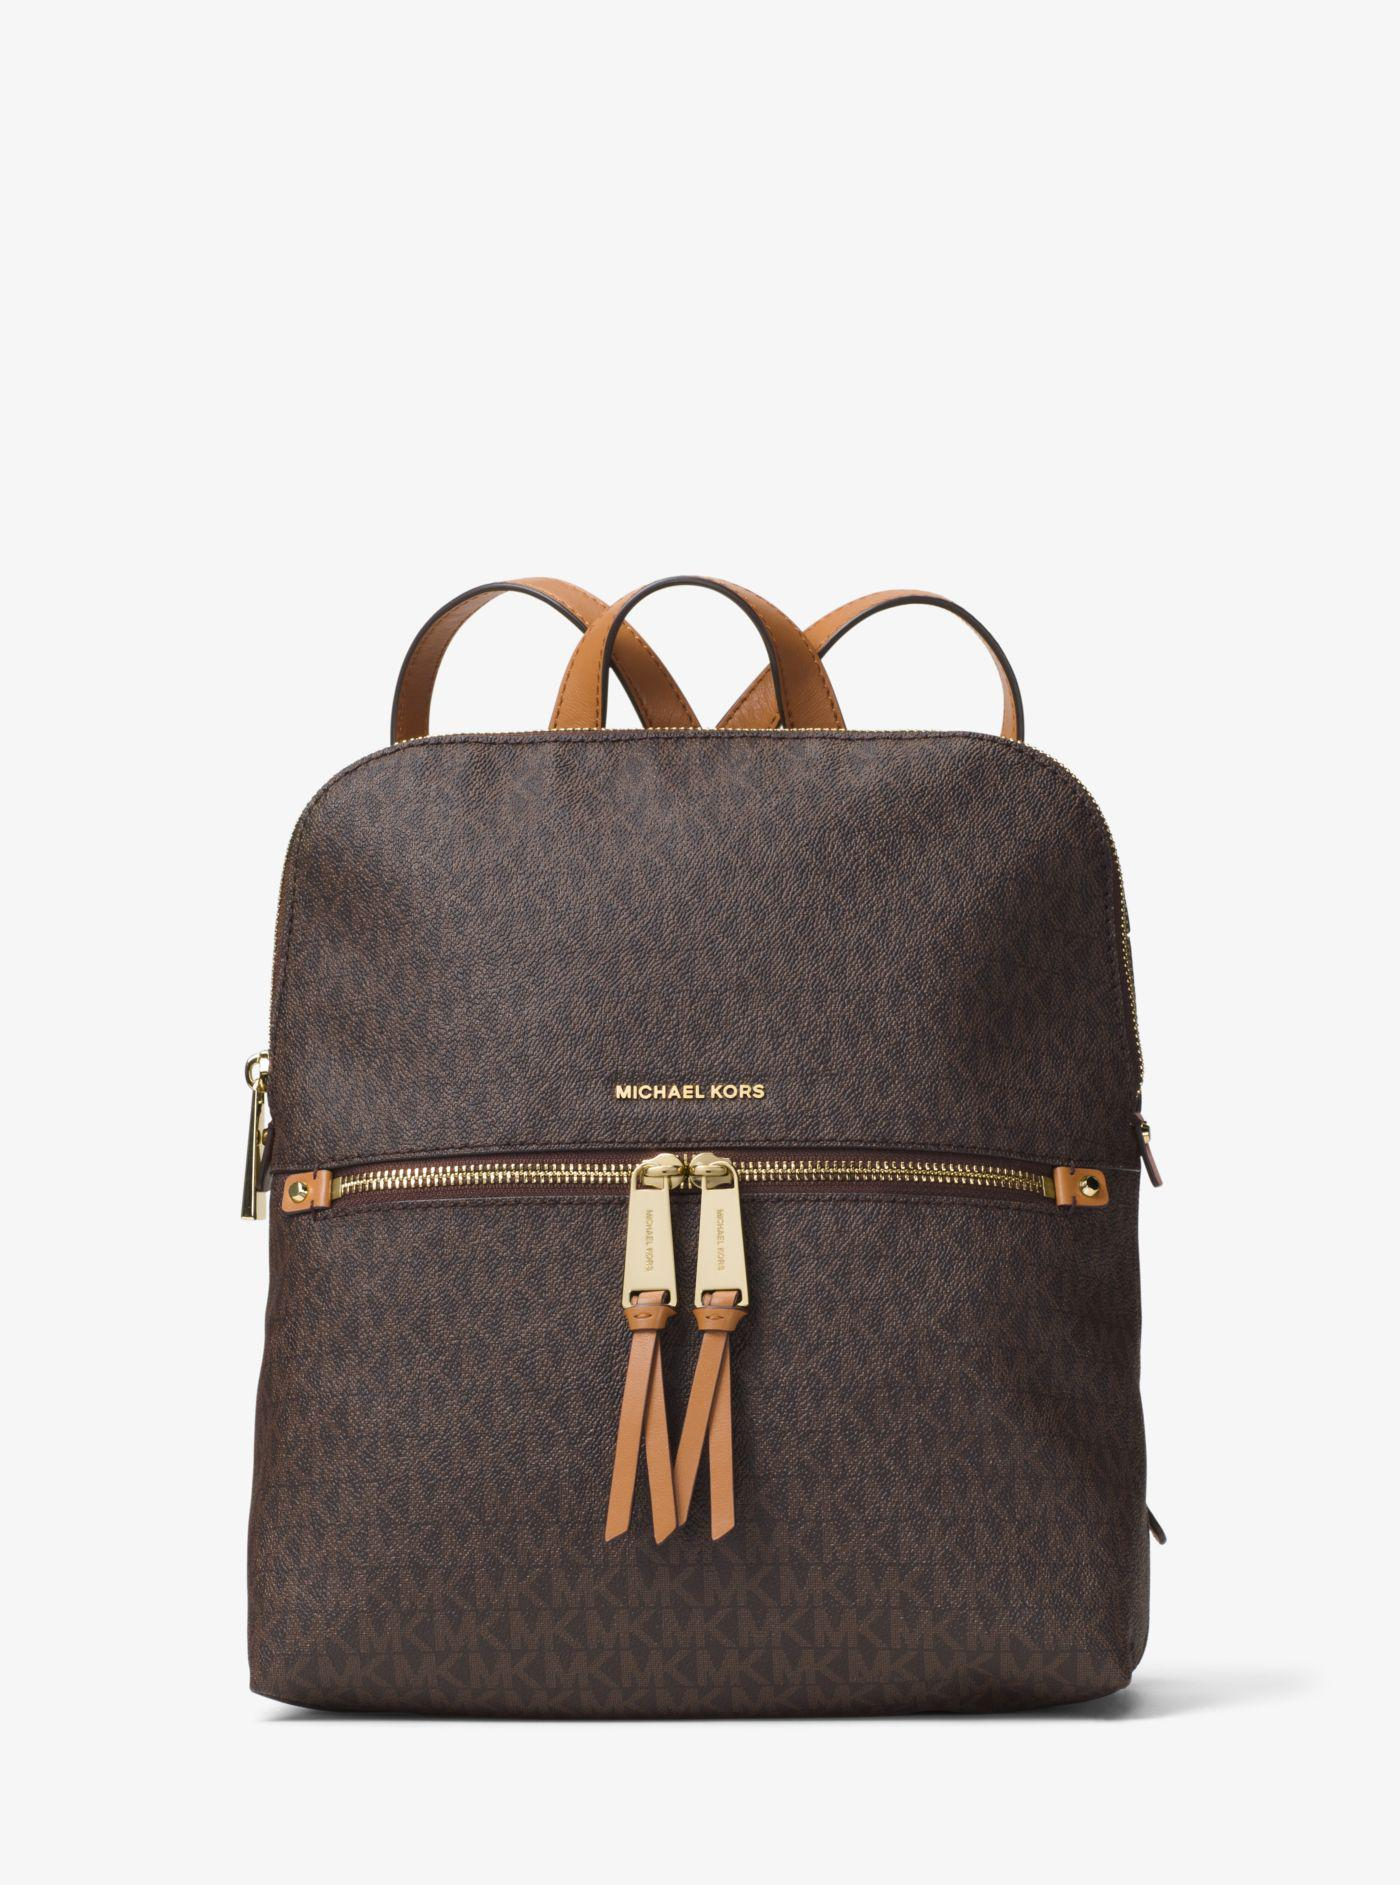 Michael Kors - Brown Rhea Medium Slim Logo Backpack - Lyst. View fullscreen e2d106e83e